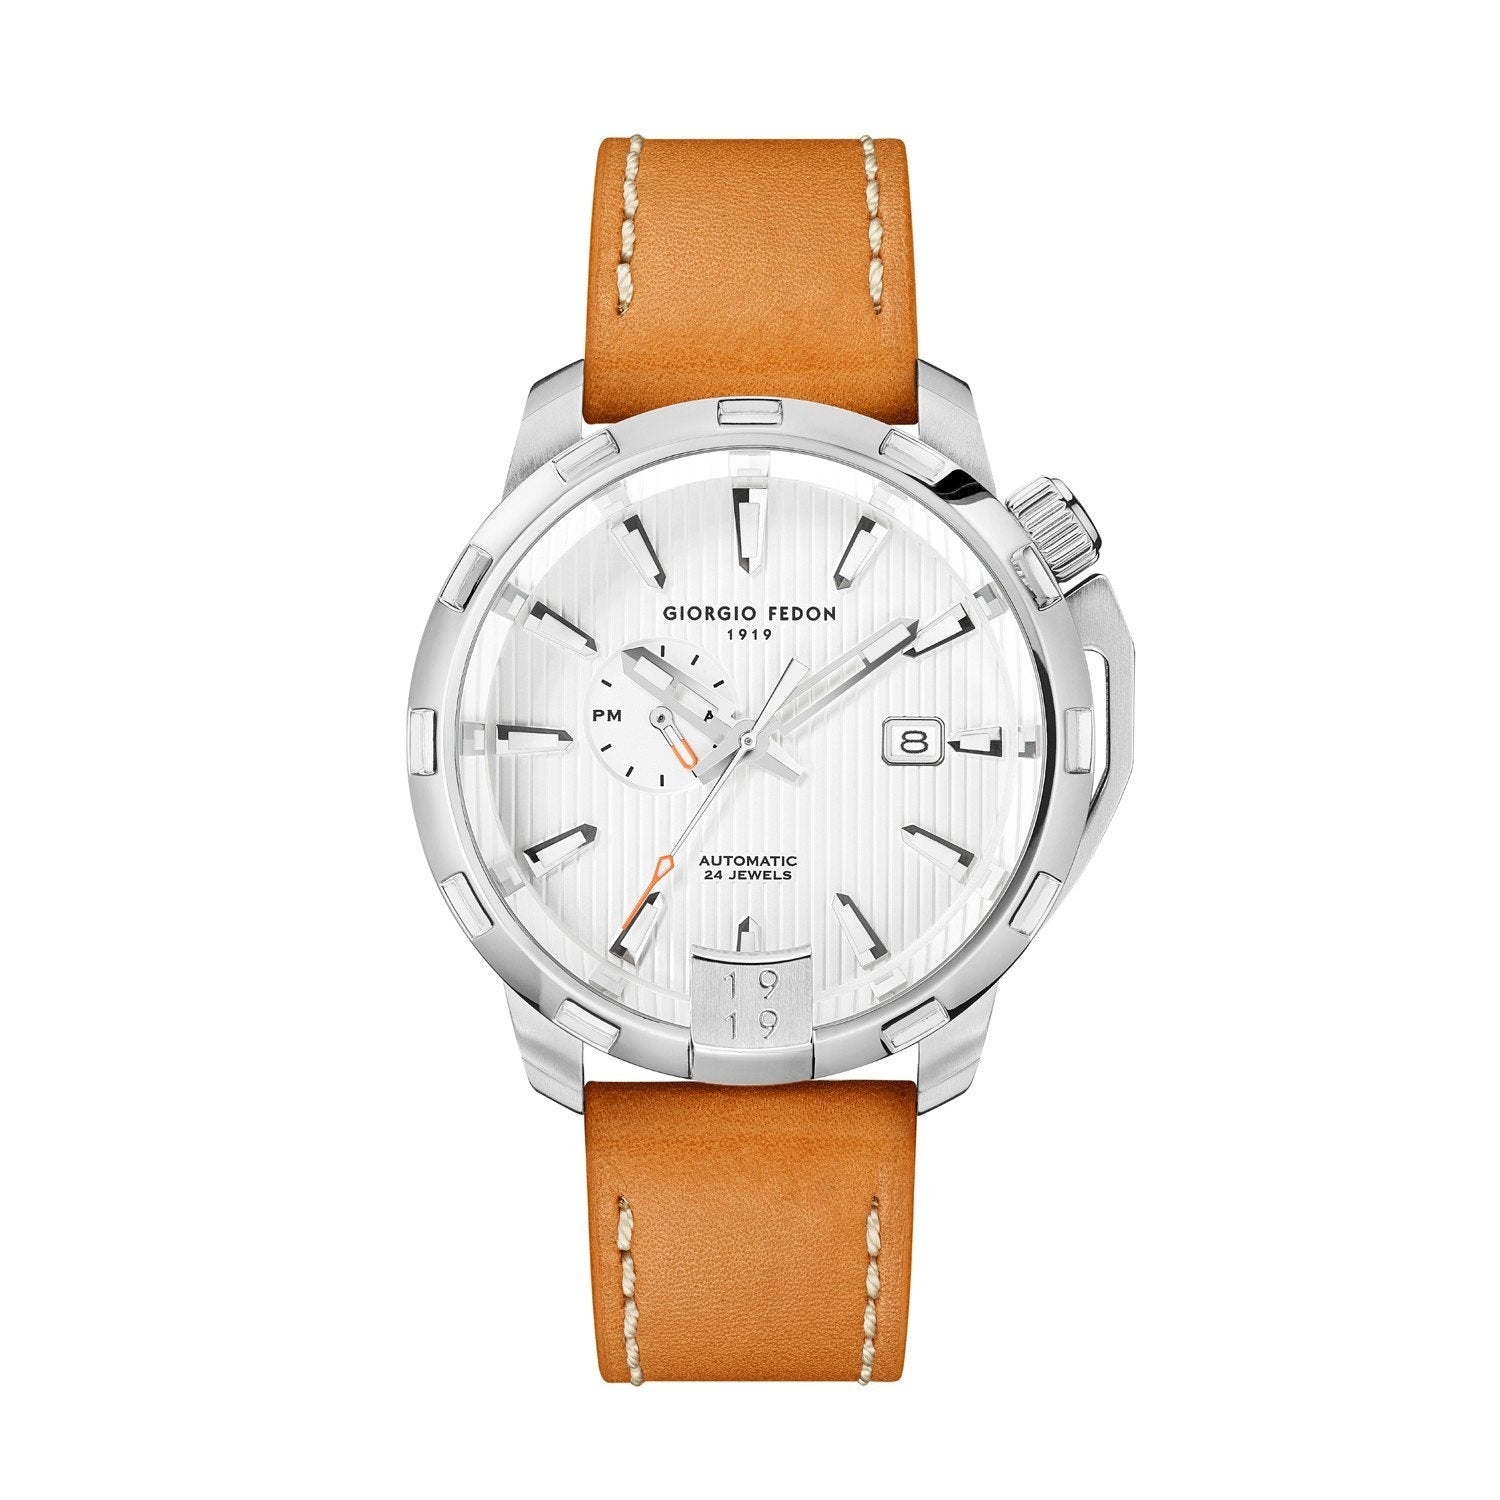 Giorgio Fedon Timeless VIII Men's Watch White - Watches & Crystals